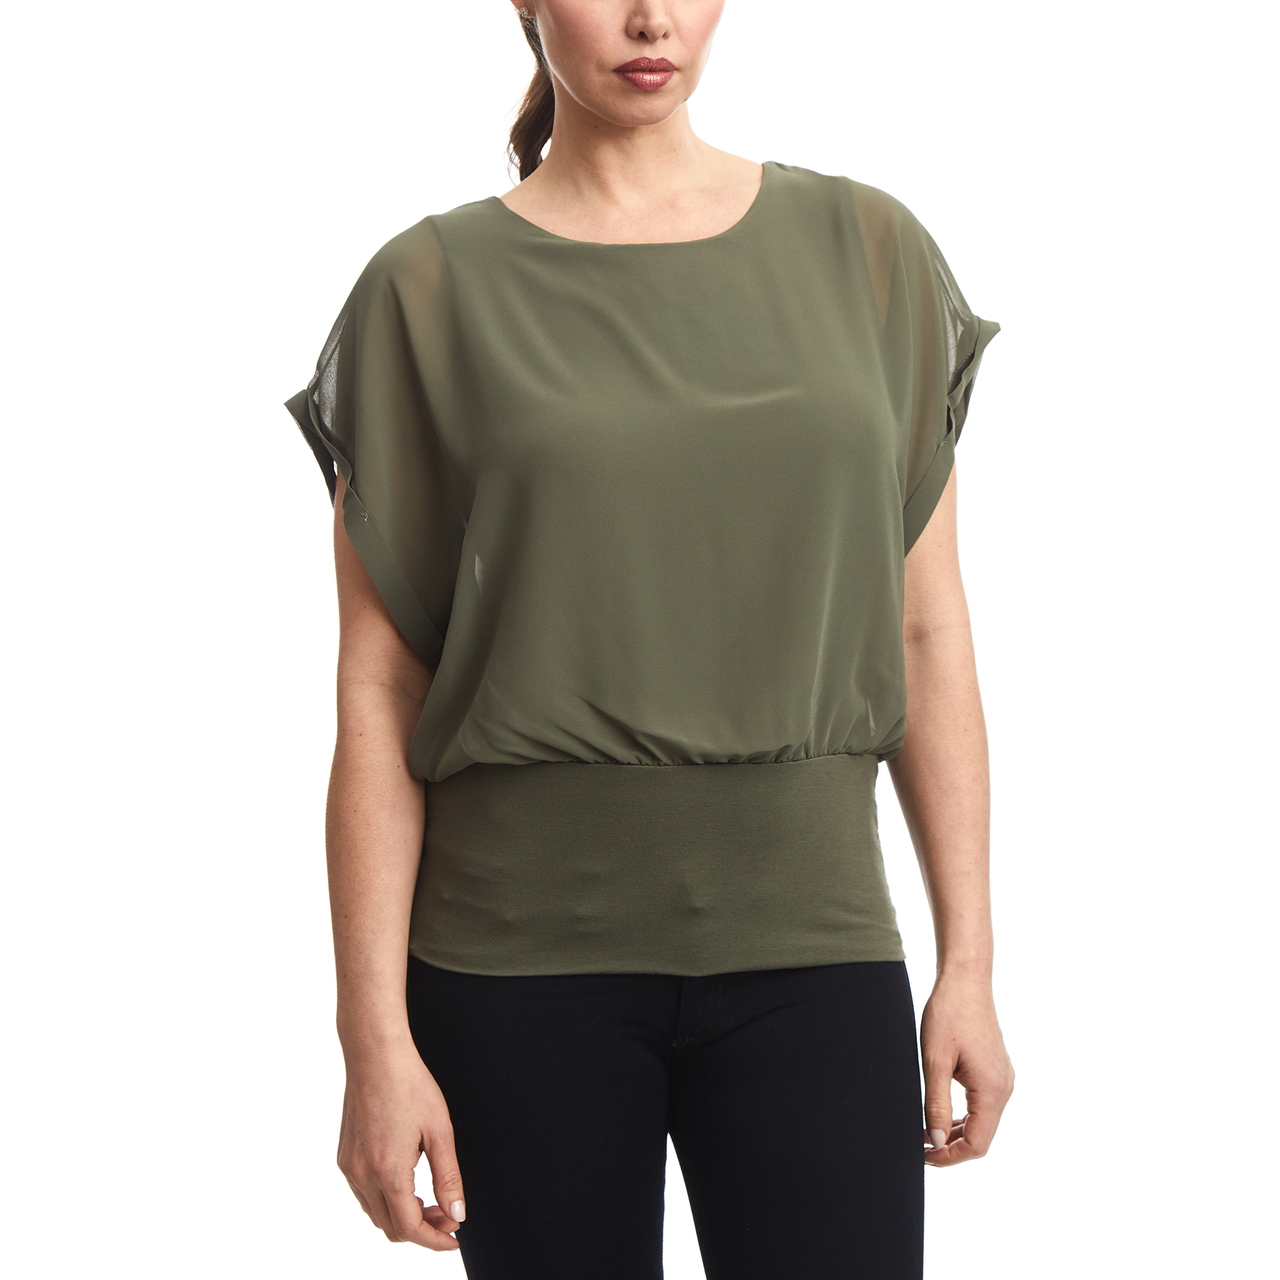 Dolman Sleeve Chiffon Top With Knit Banded Bottom In Olive